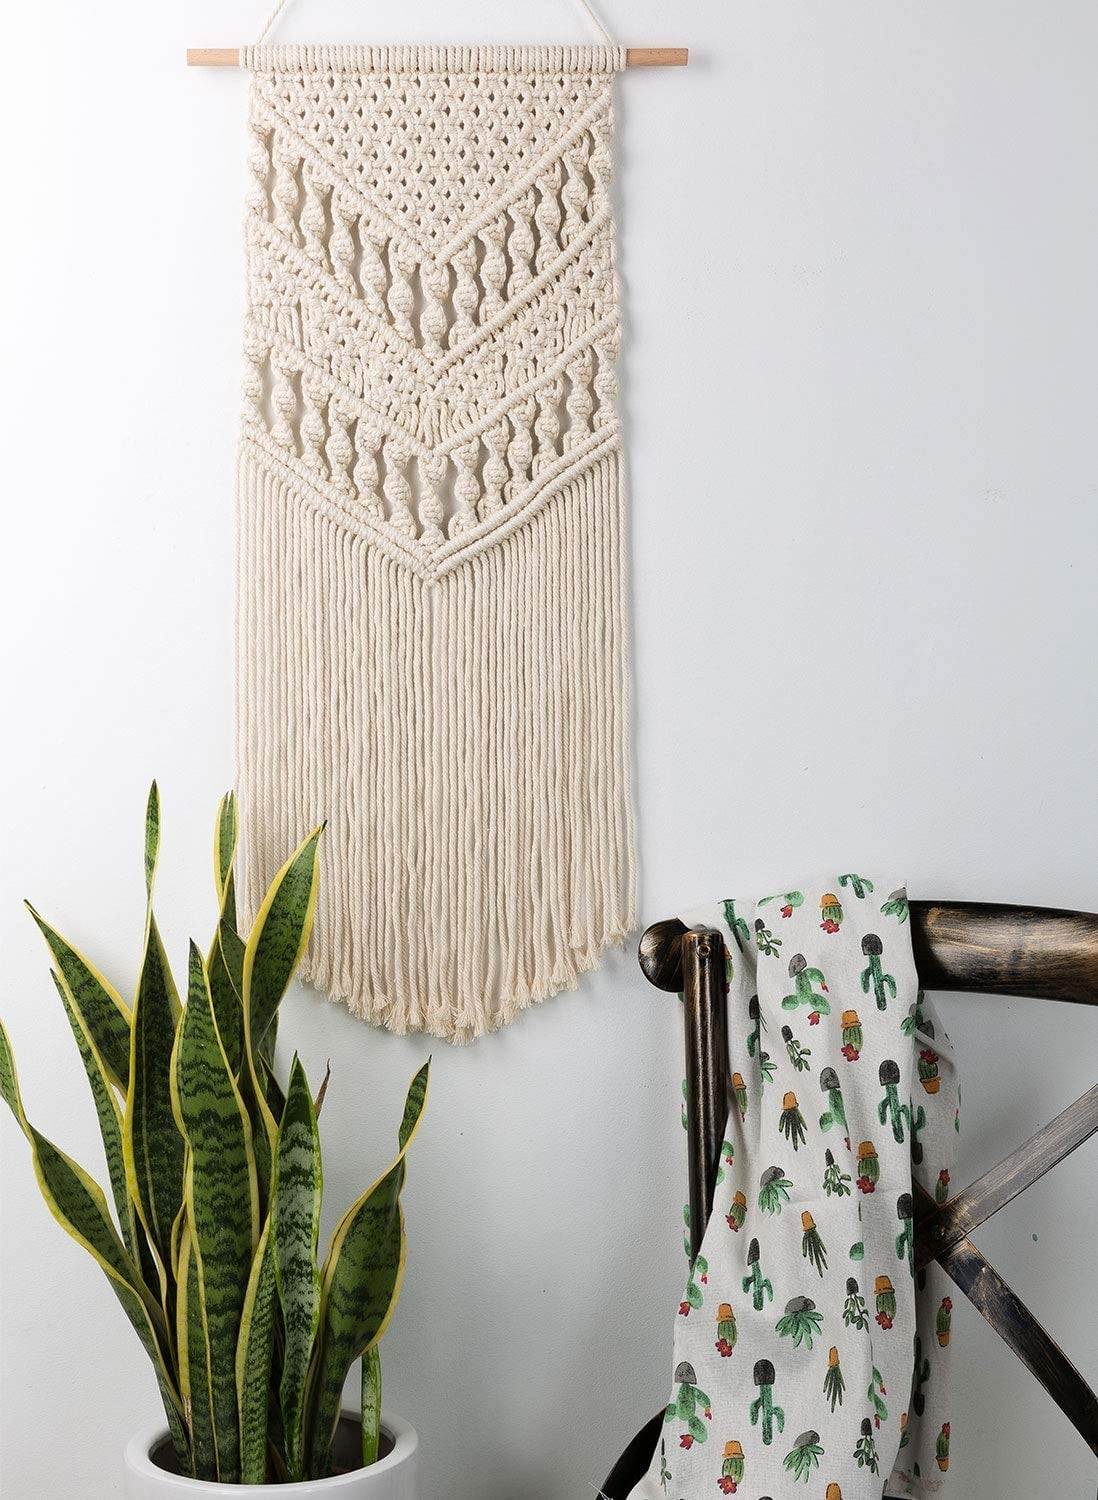 Beige boho macrame for a unique interior decoration